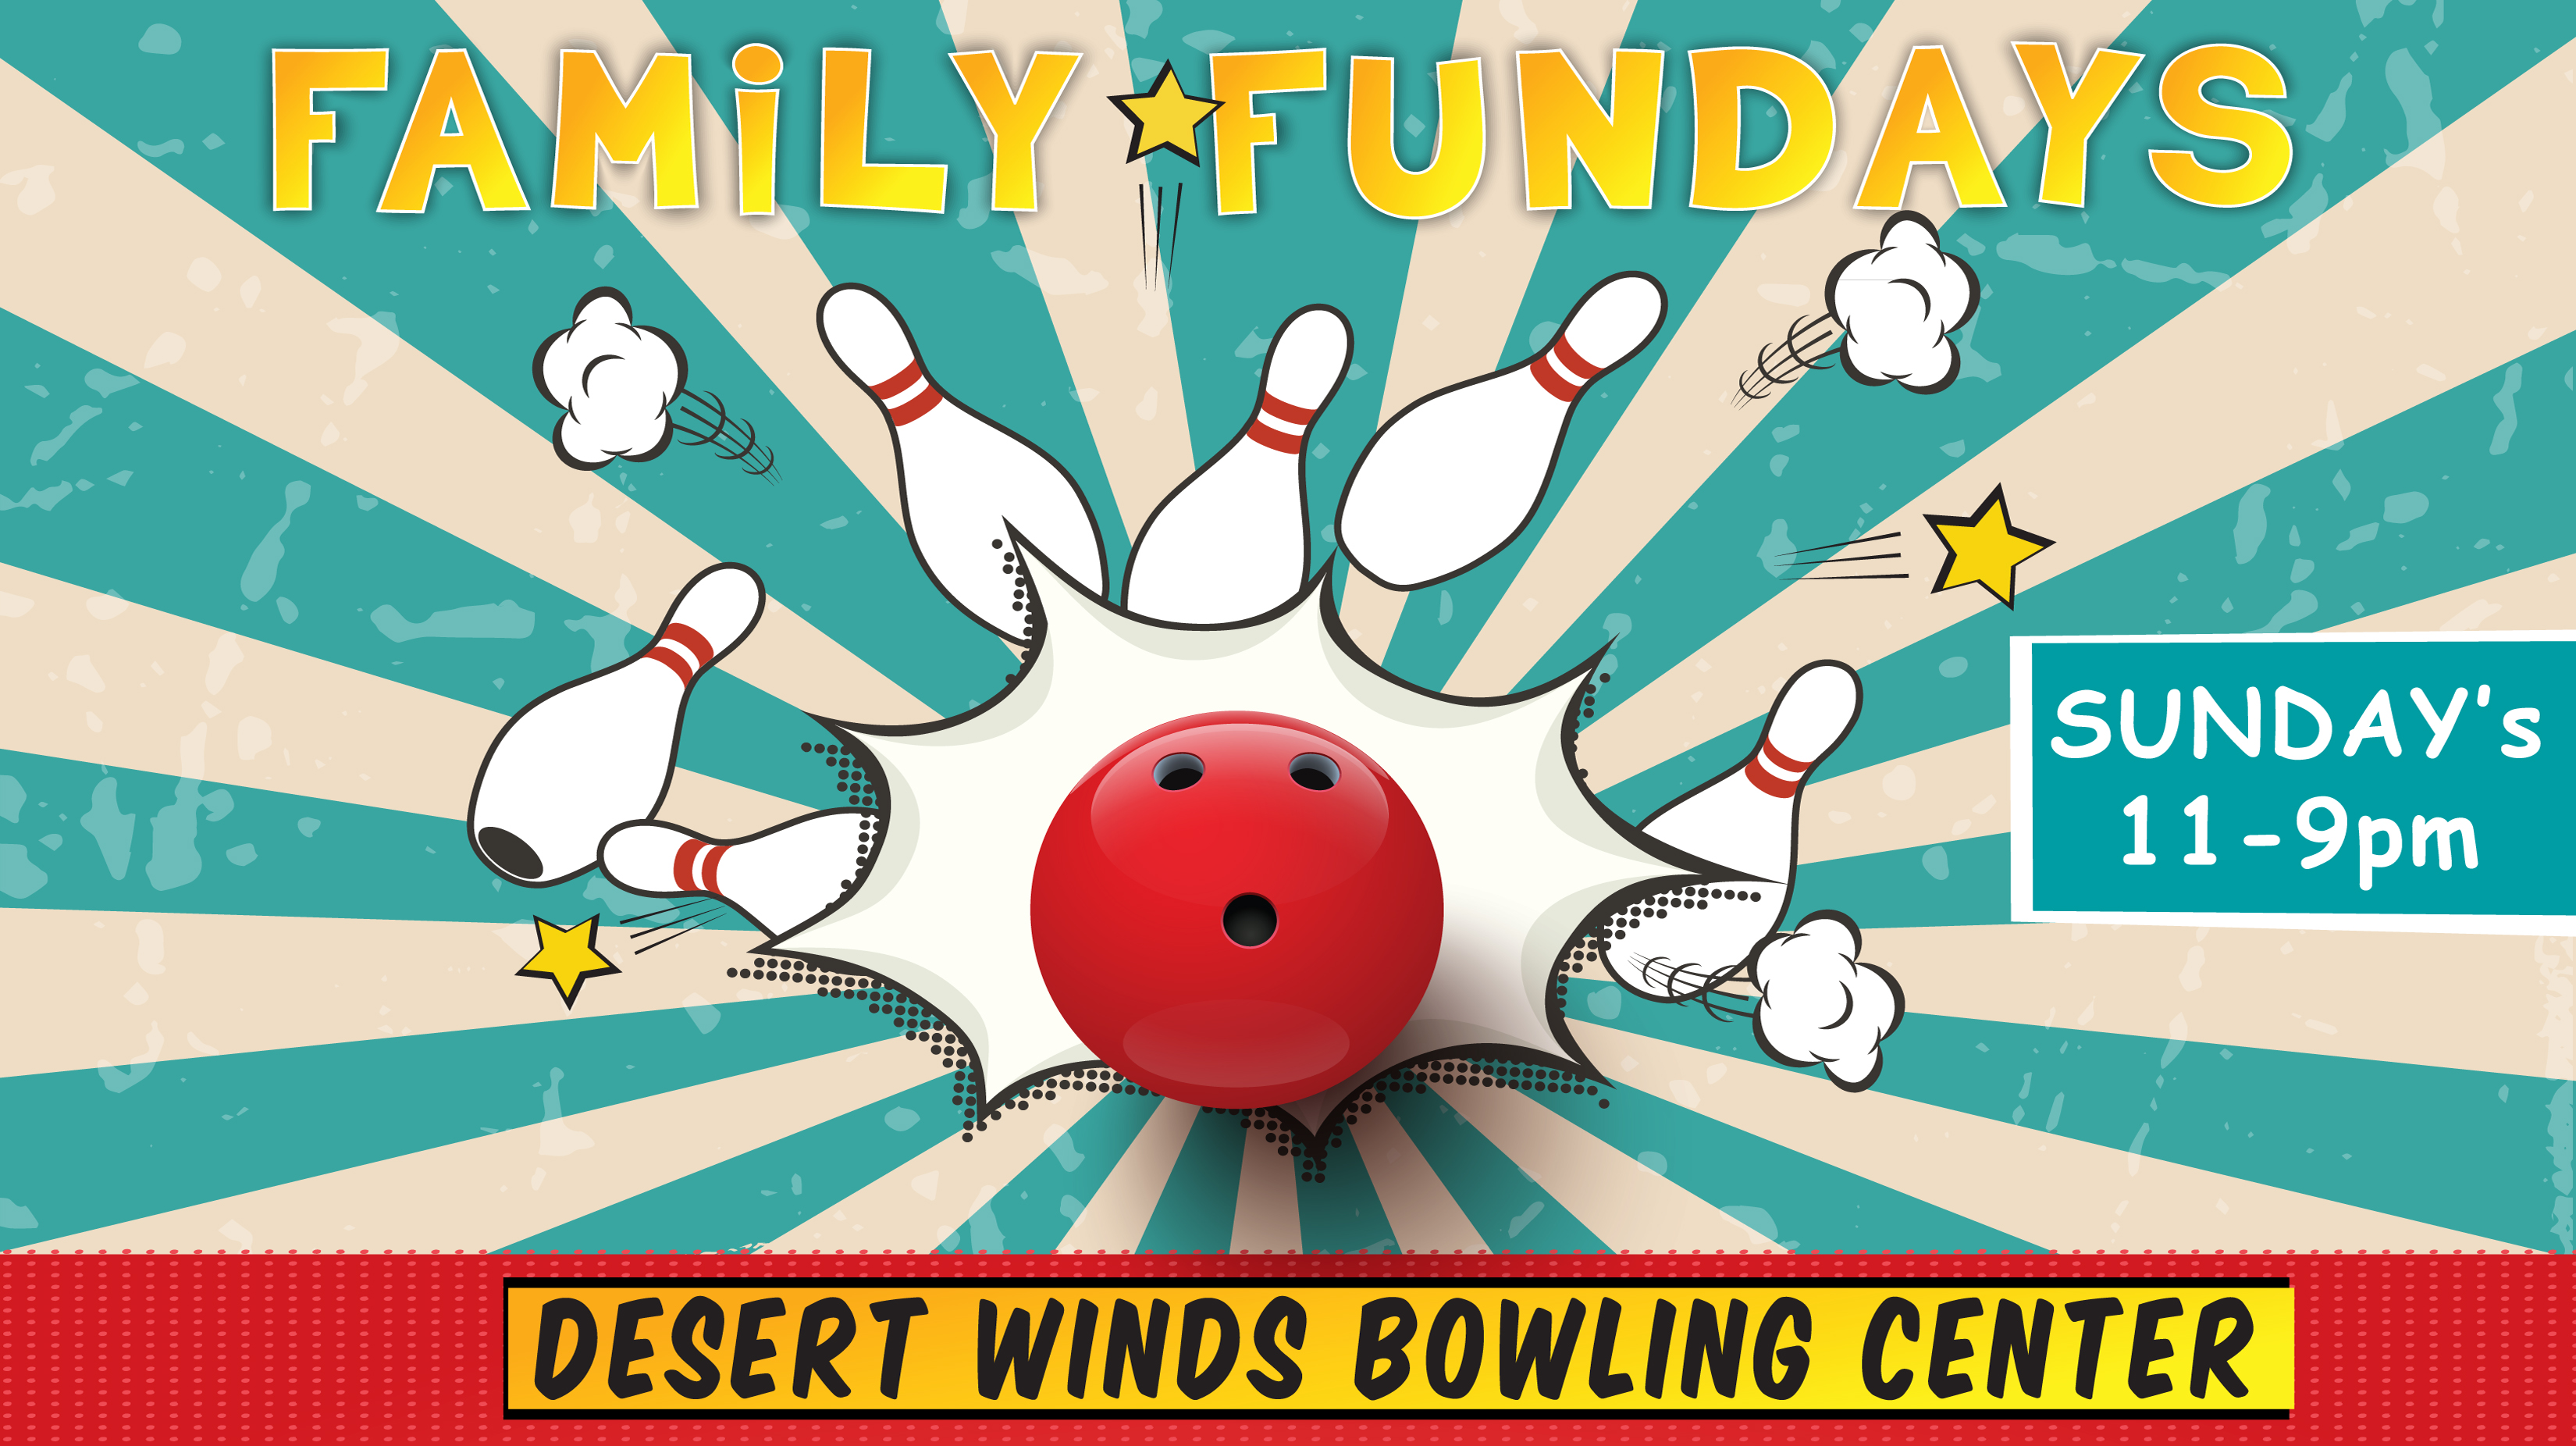 Family Fundays at Desert Winds Bowling